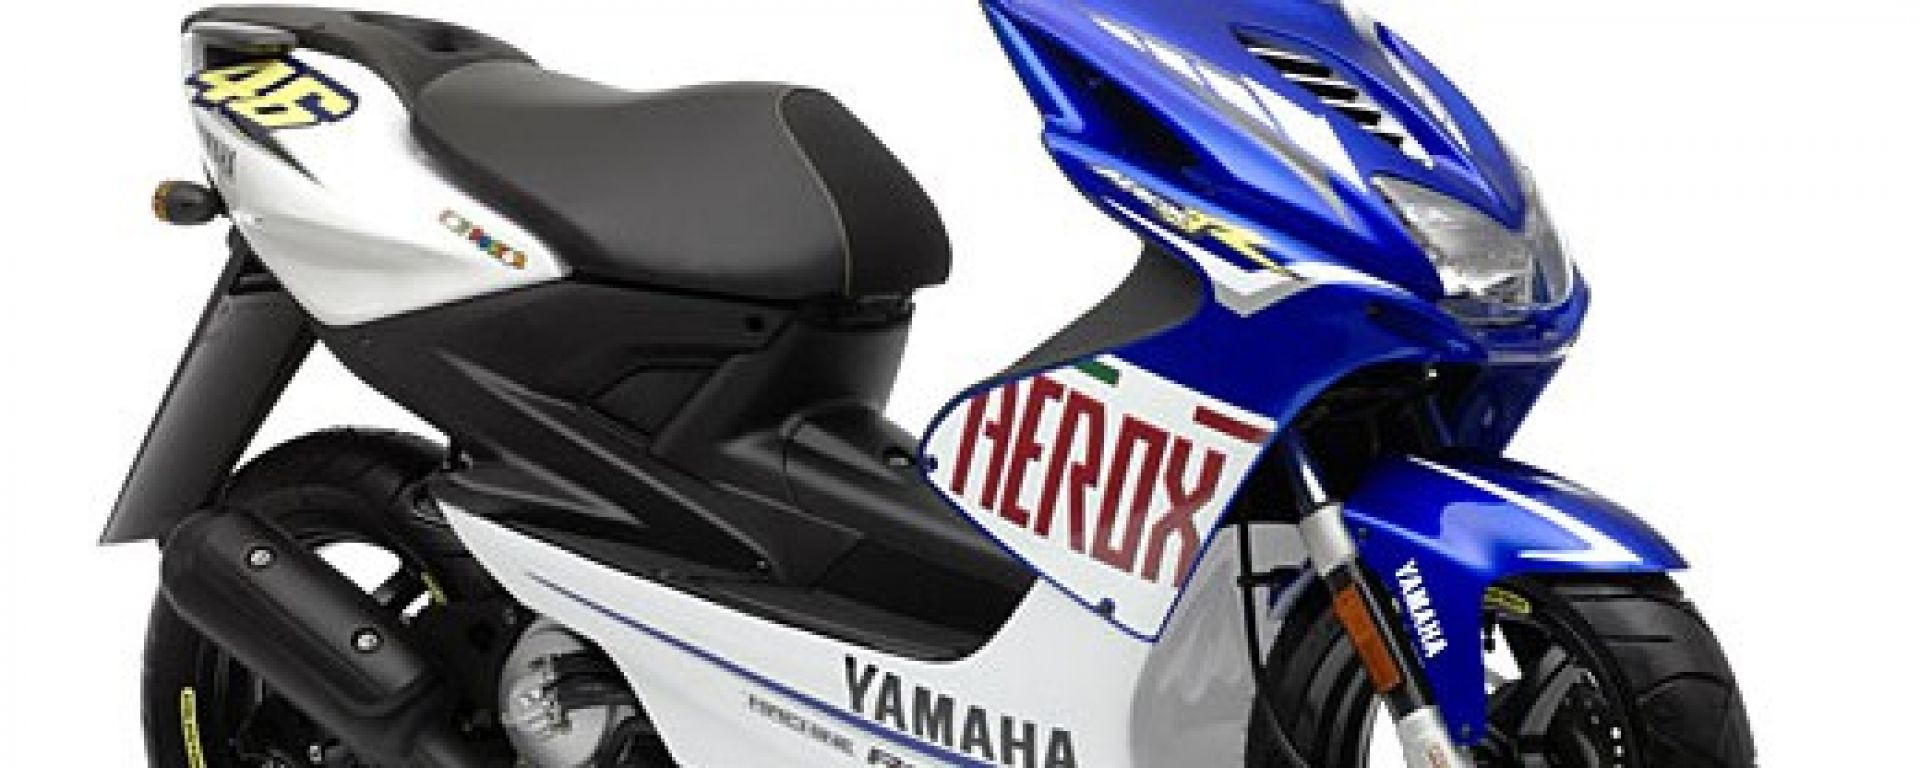 Yamaha Aerox Race Replica 2007